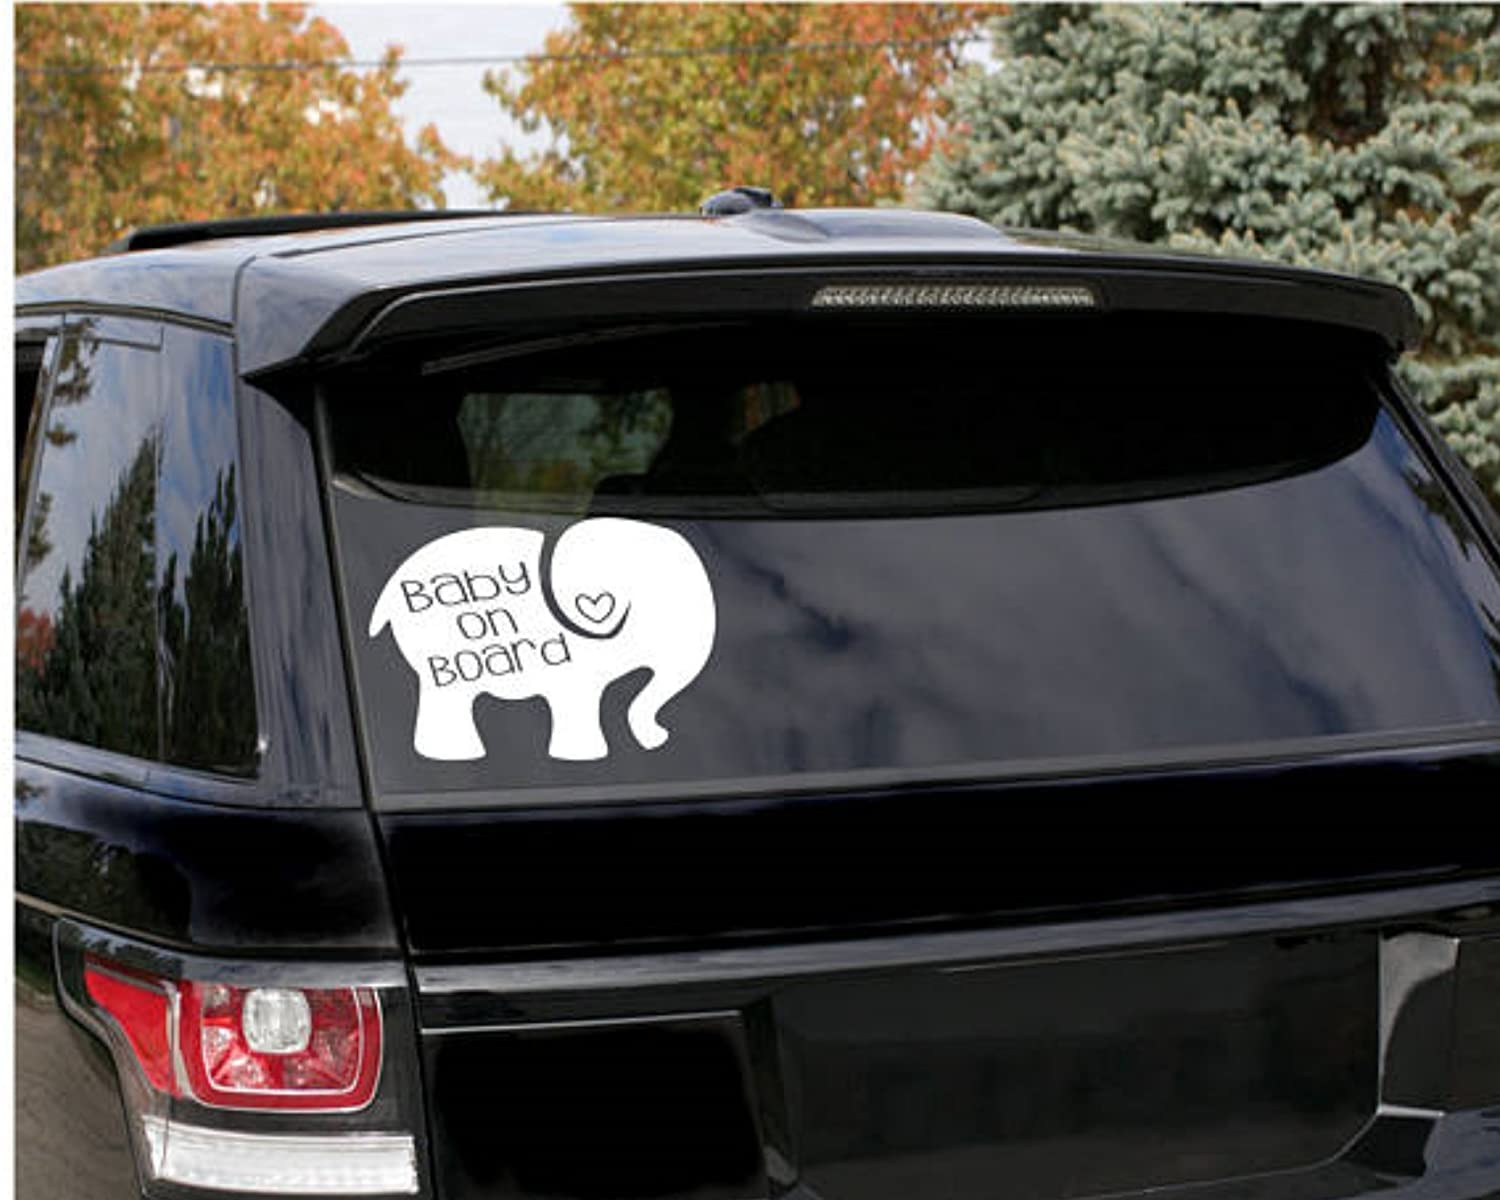 Cute elephant baby on board decal baby decal car decals baby stickers car stickers modern elephant decal elephant drawing new baby elephant sticker